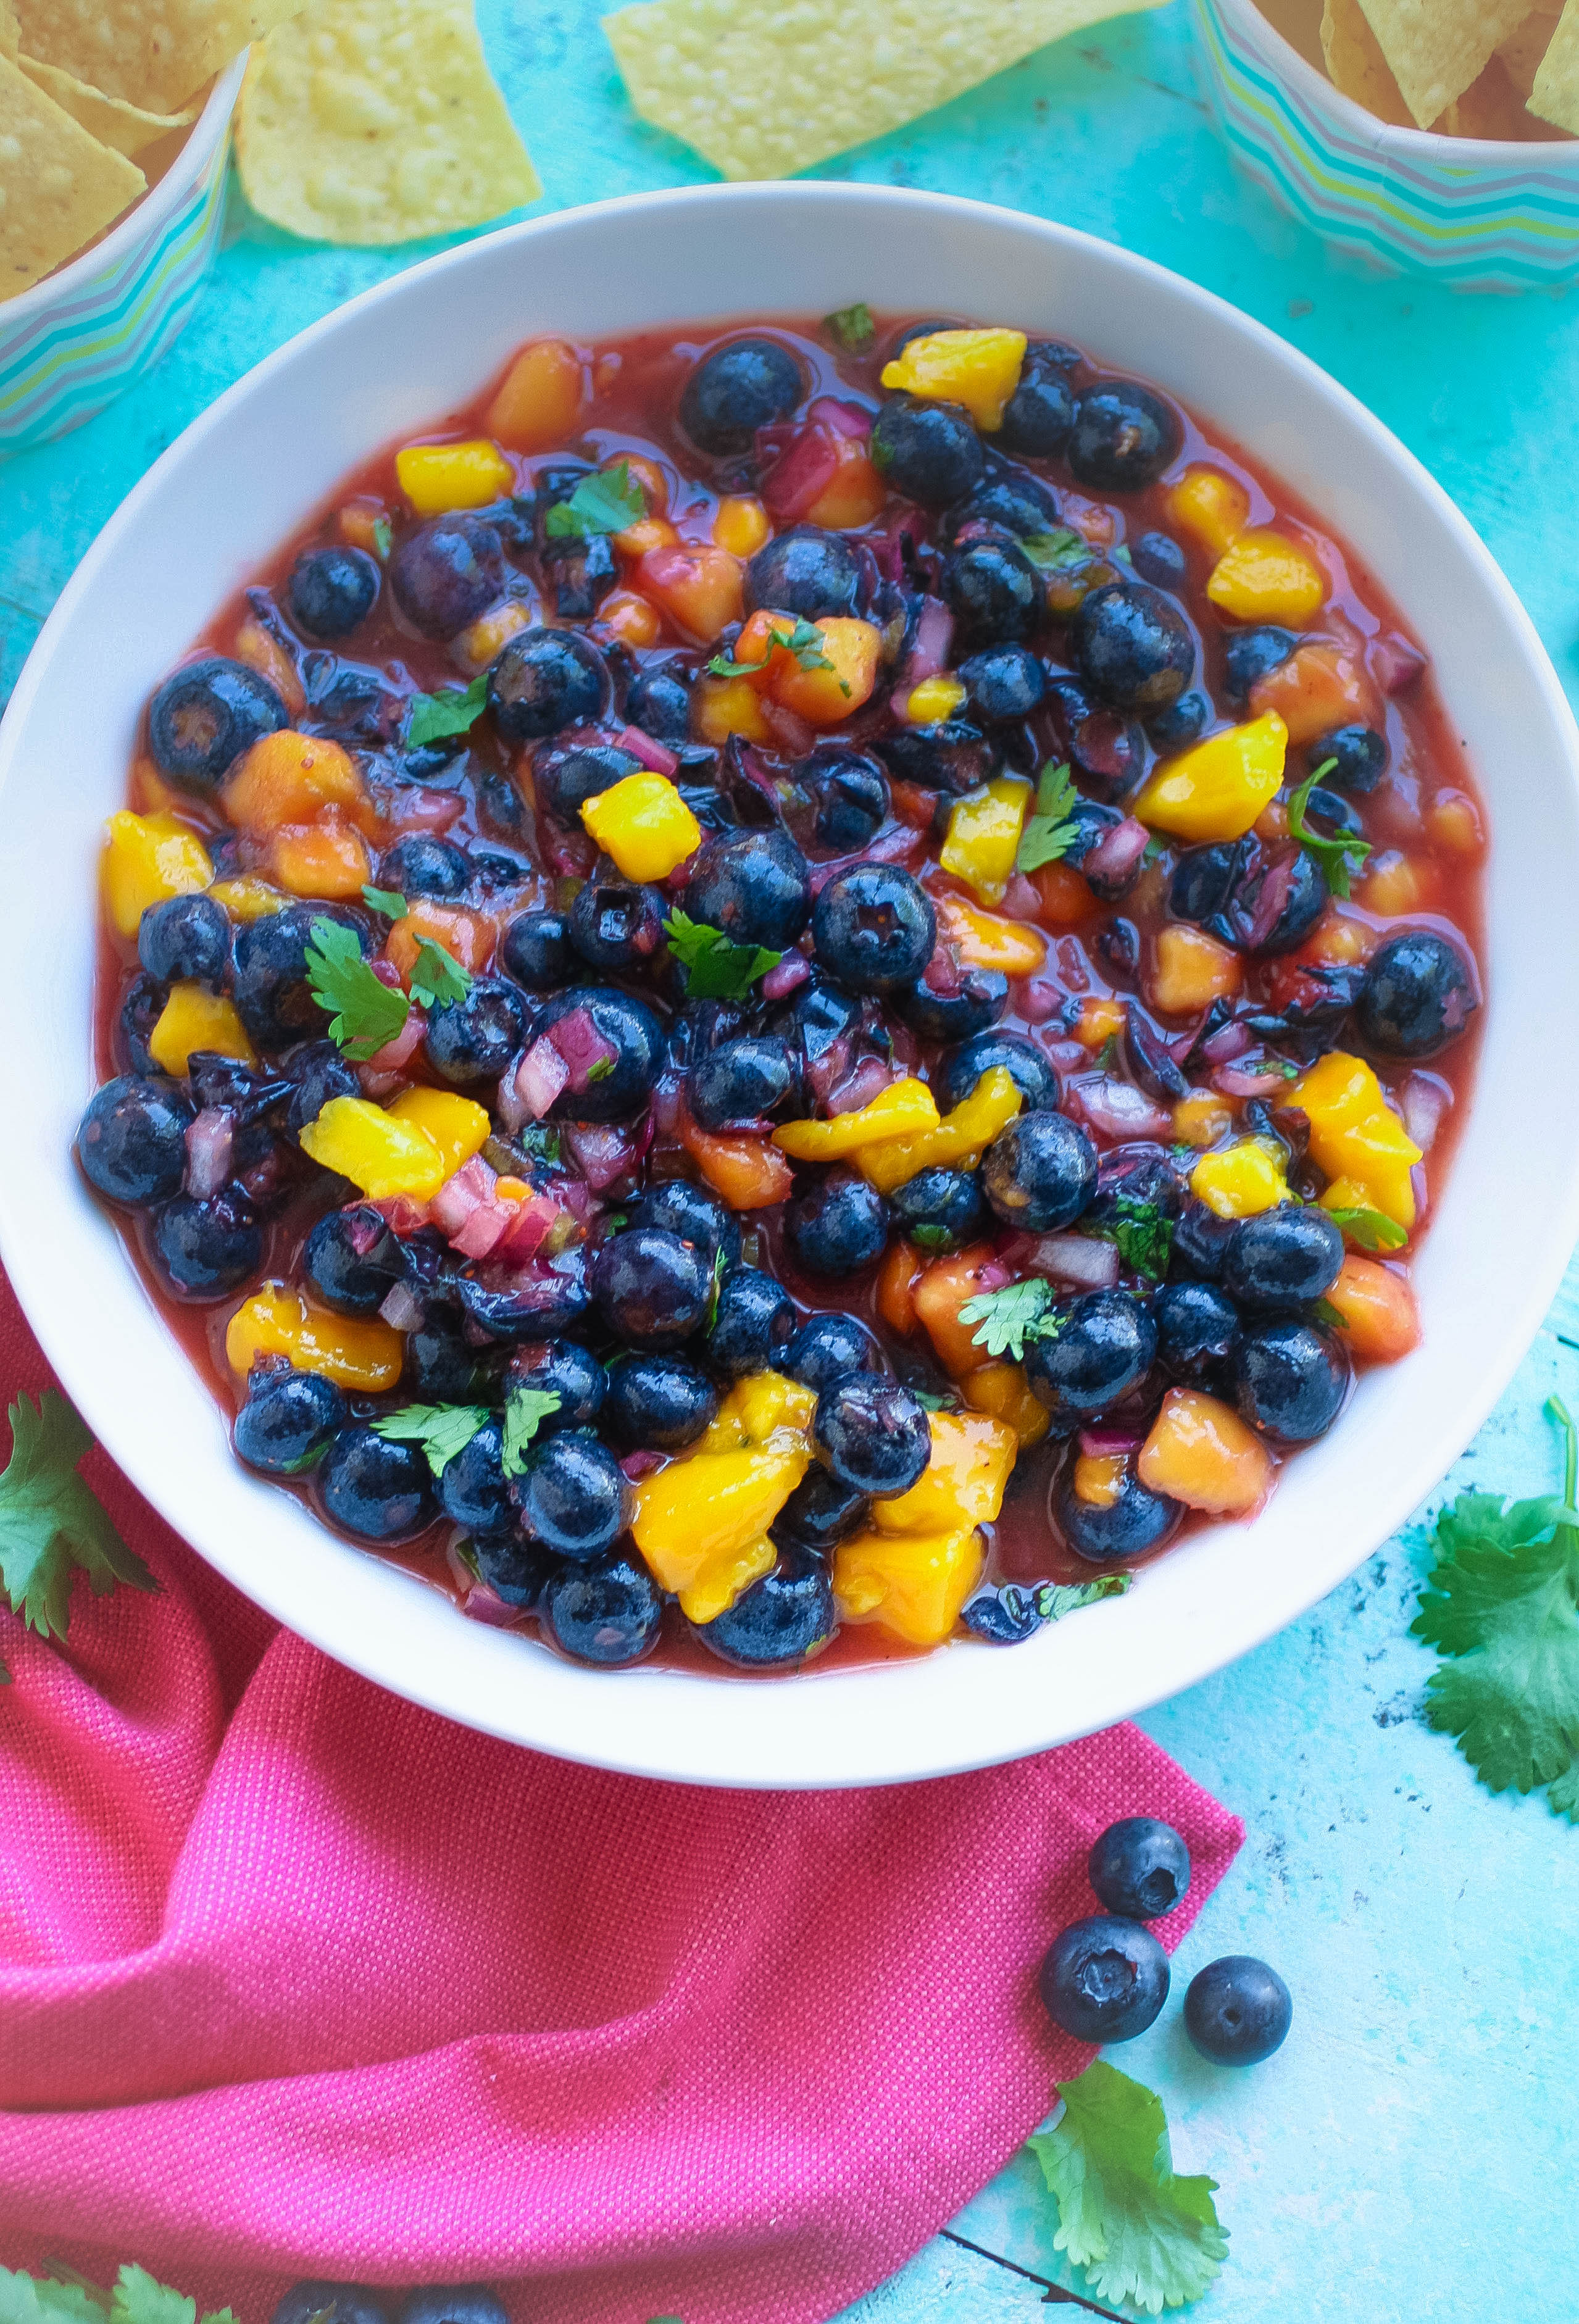 Blueberry-Mango Salsa is something delightfully different to snack on! Blueberry-Mango Salsa should be your new go-to salsa this season!